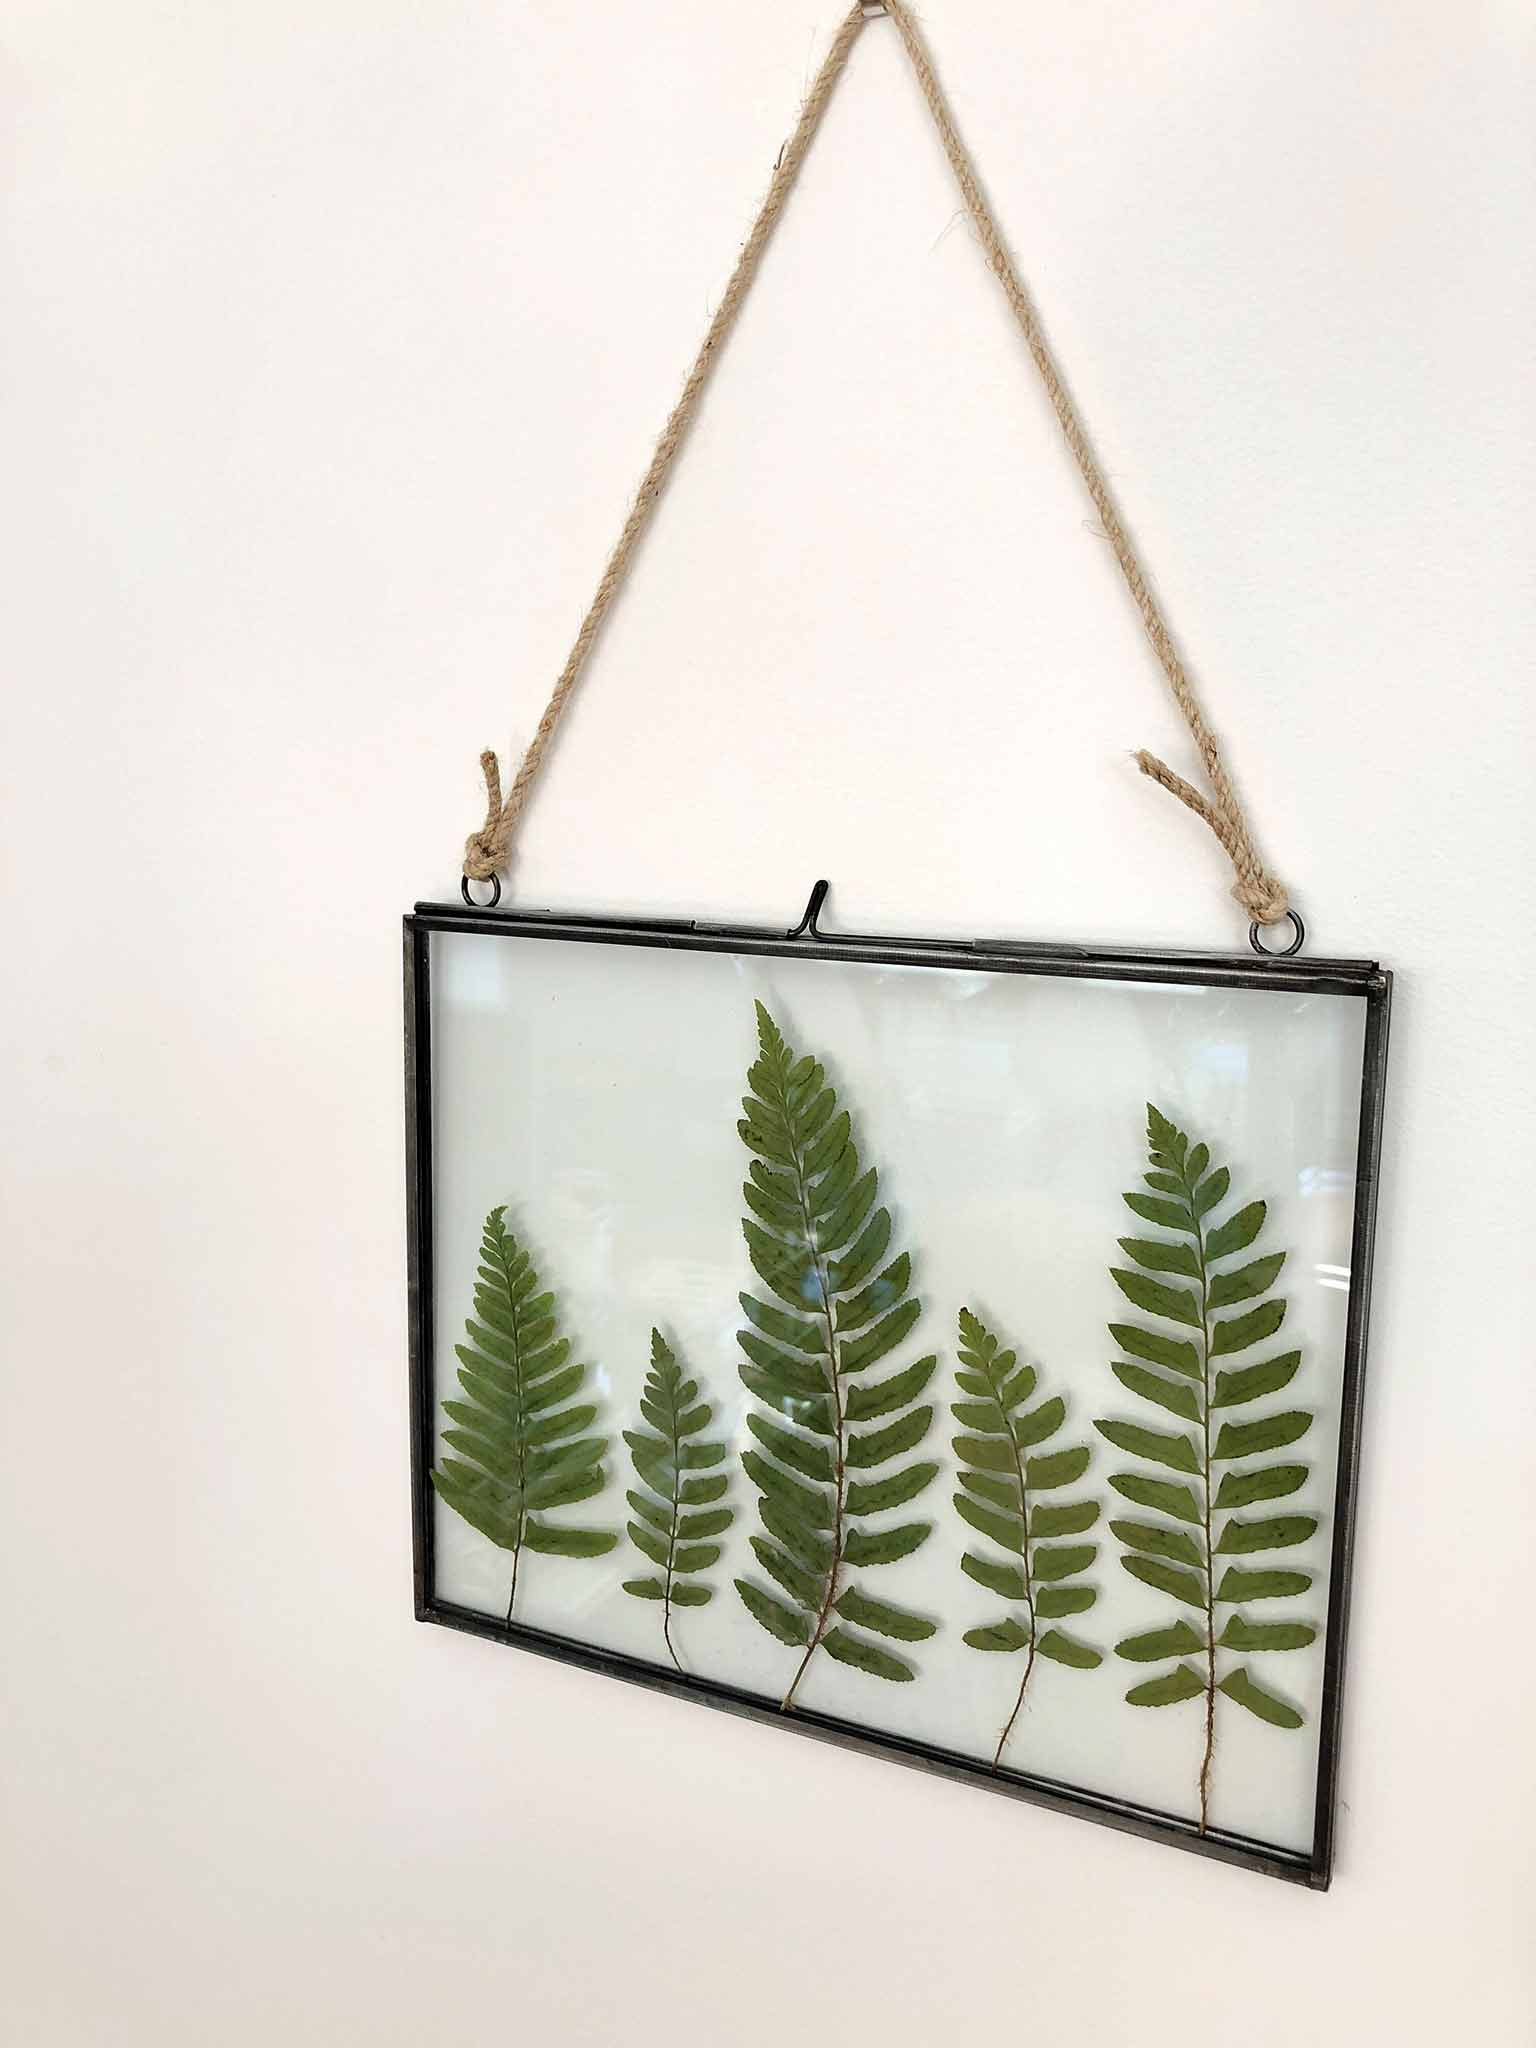 Master Bedroom Etsy Finds Leaf Art - The One Room Challenge - That Homebird Life Blog